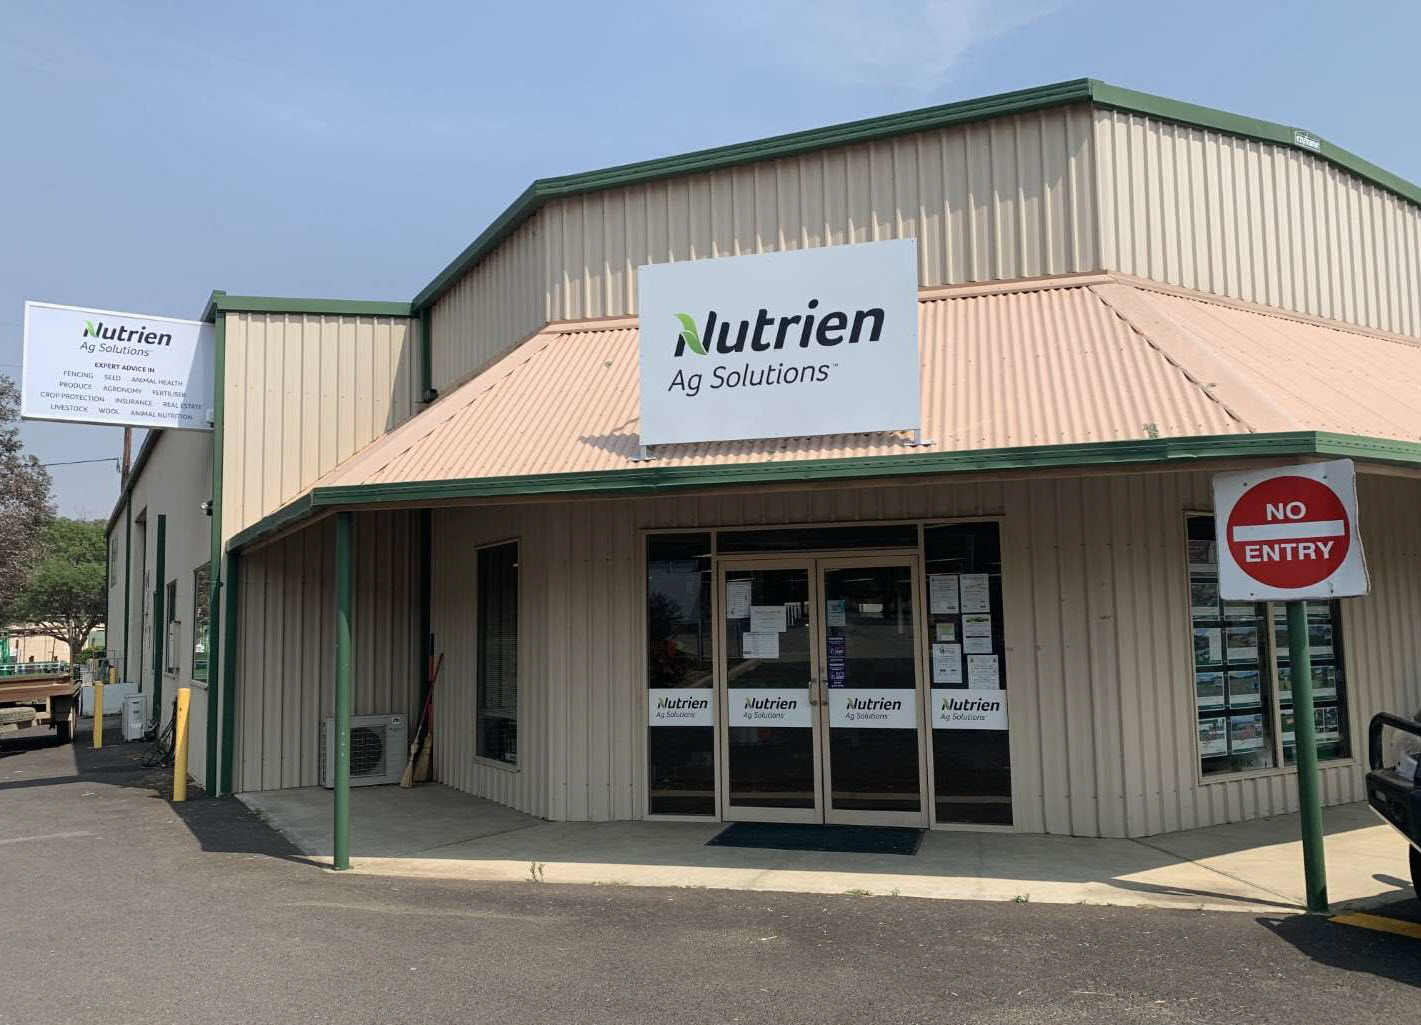 Nutrien Ag Solutions - Armidale, NSW 2350 - (02) 6772 8188 | ShowMeLocal.com